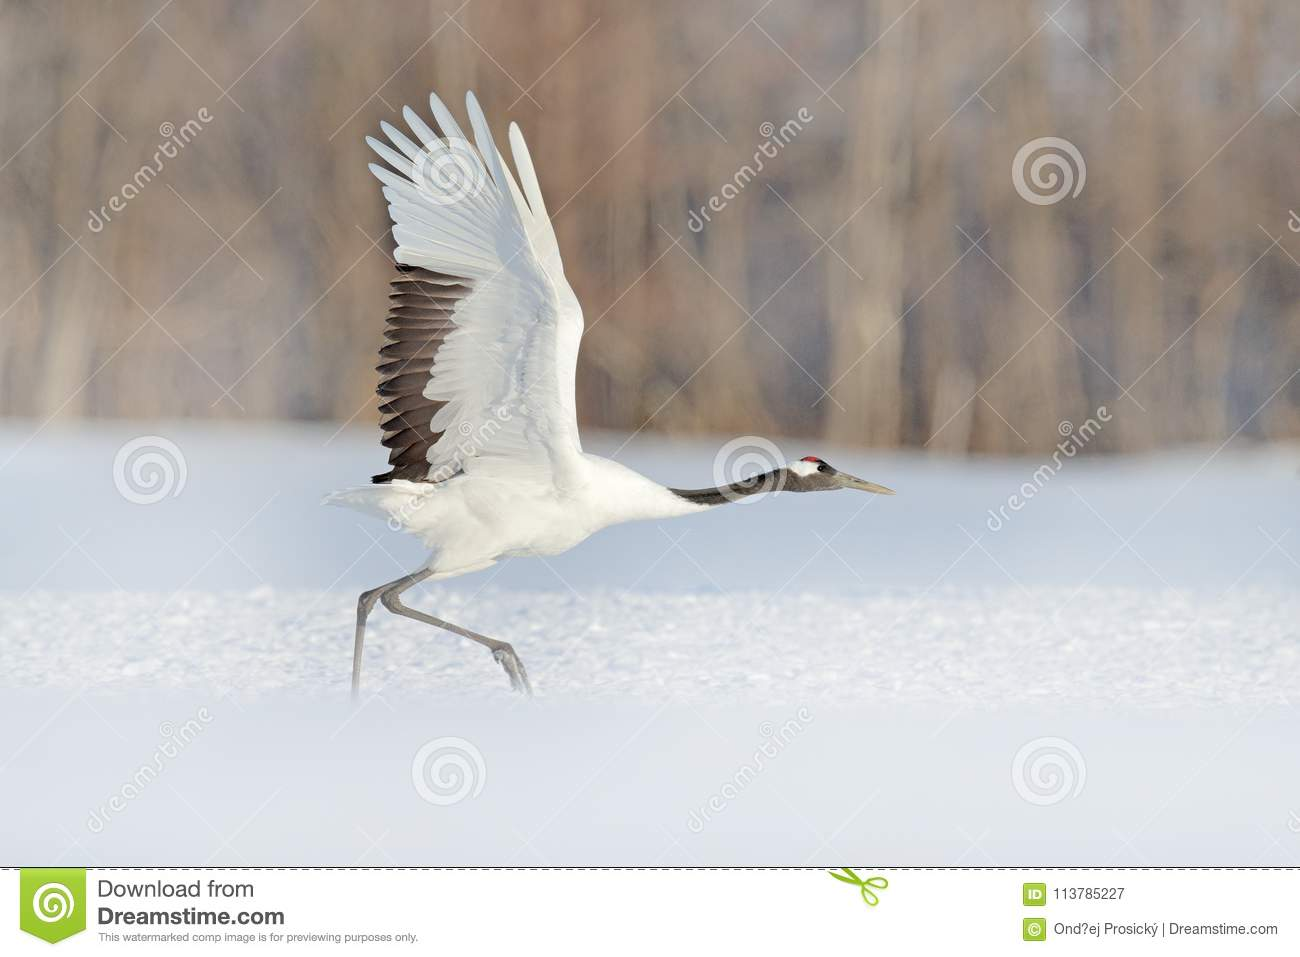 Start Red-crowned crane in snow meadow, with snow storm, Hokkaido, Japan. Bird in fly, winter scene with snowflakes. Snow dance in